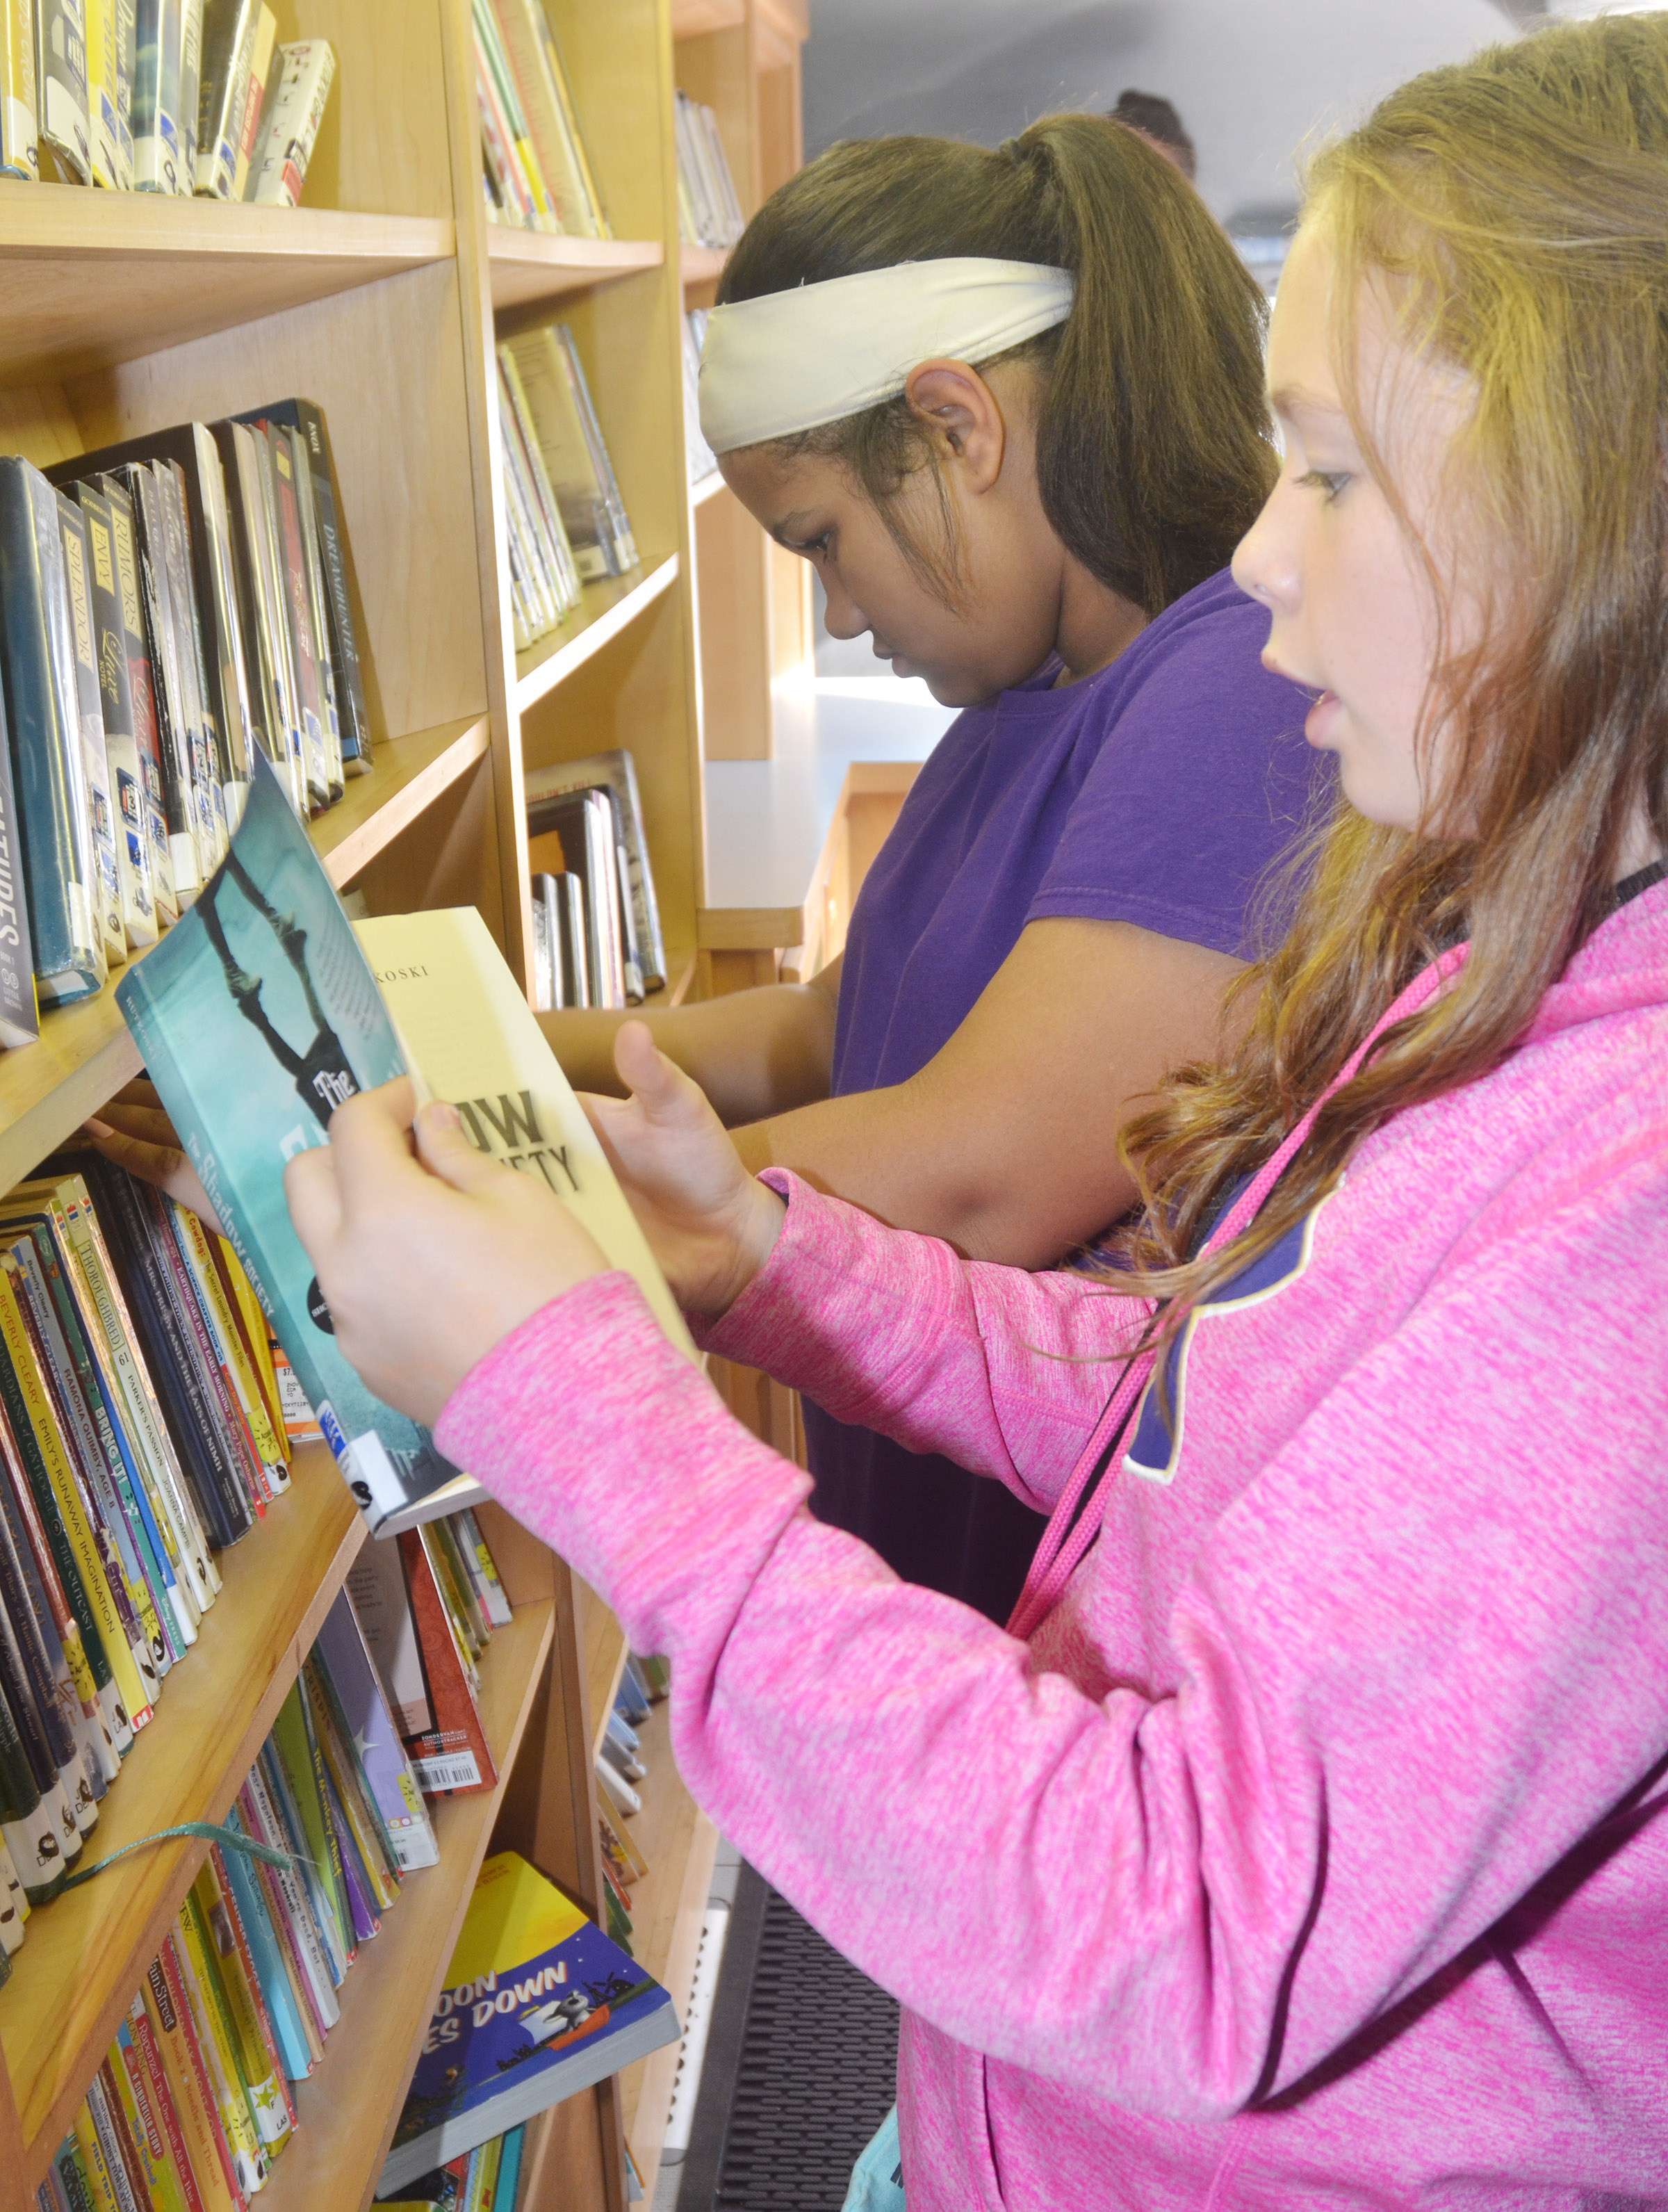 CMS sixth-graders Kehleigh Vaught, at left, and CheyAnn Edwards look at books.